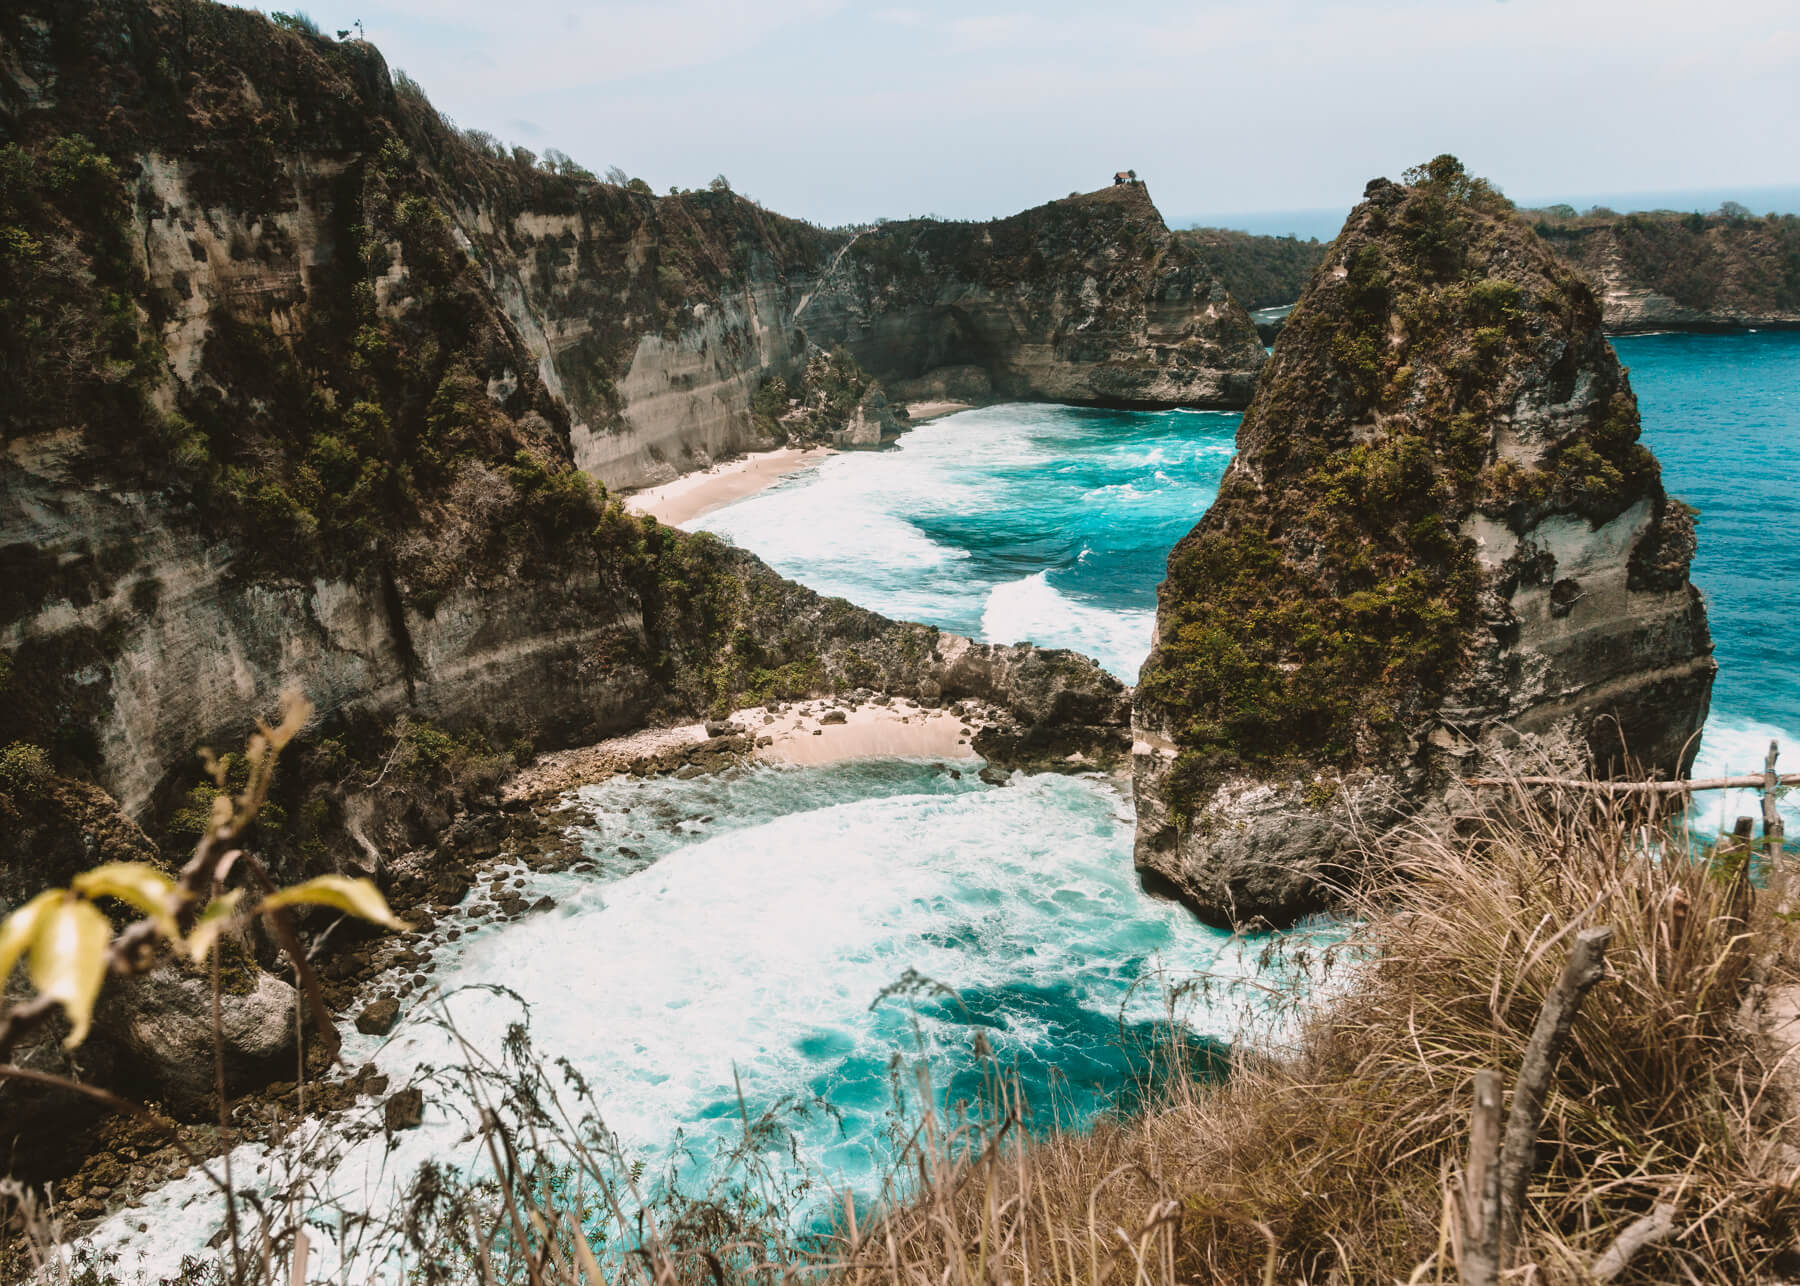 Nusa Penida, Thousand Islands Viewpoint